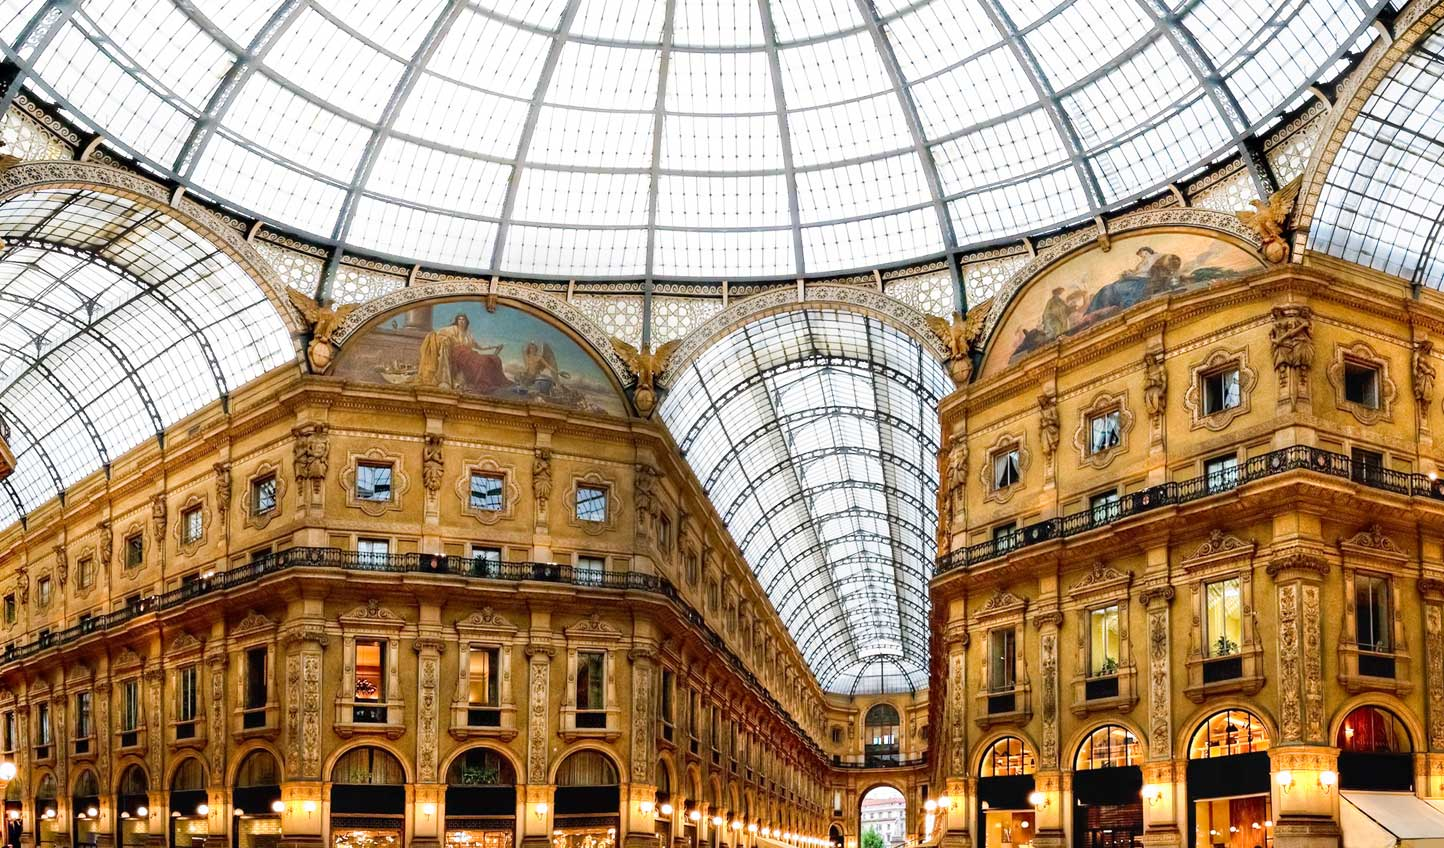 When in Milan, it would be rude not to indulge in a spot of shopping at Galleria Vittorio Emanuele II